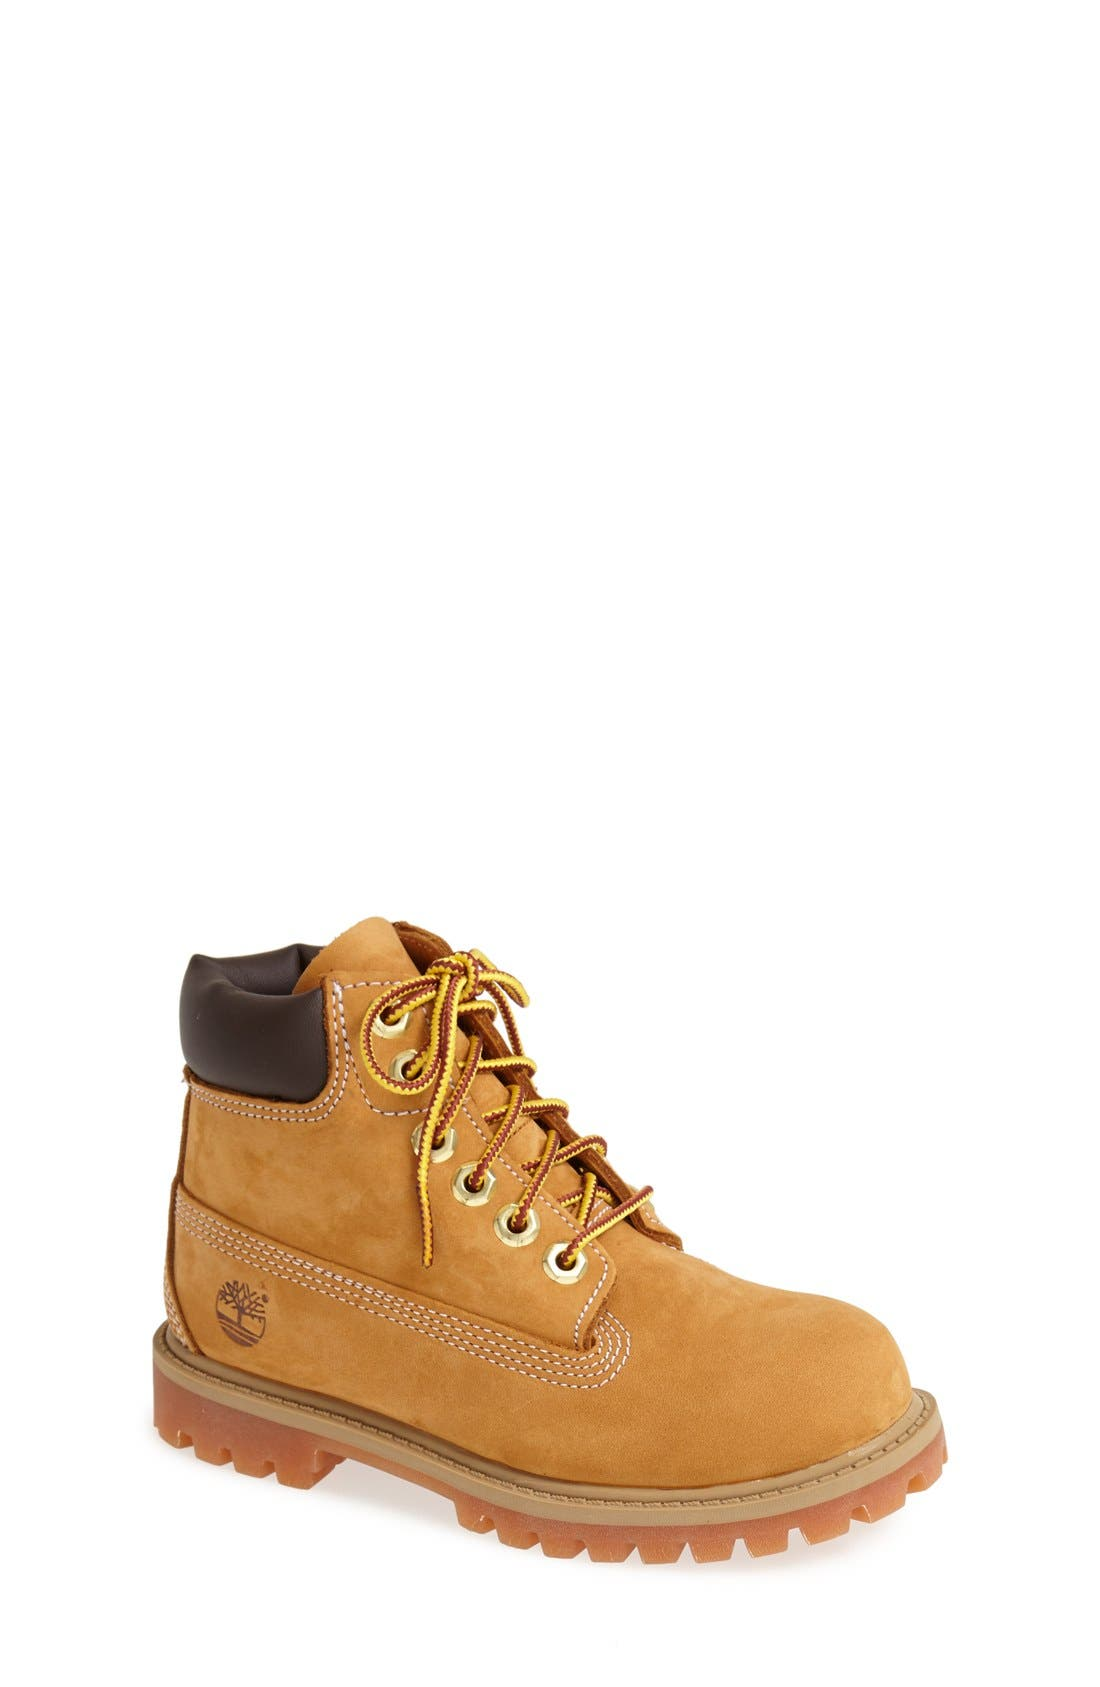 Alternate Image 1 Selected - Timberland '6 Inch Premium' Waterproof Boot (Toddler, Little Kid & Big Kid)